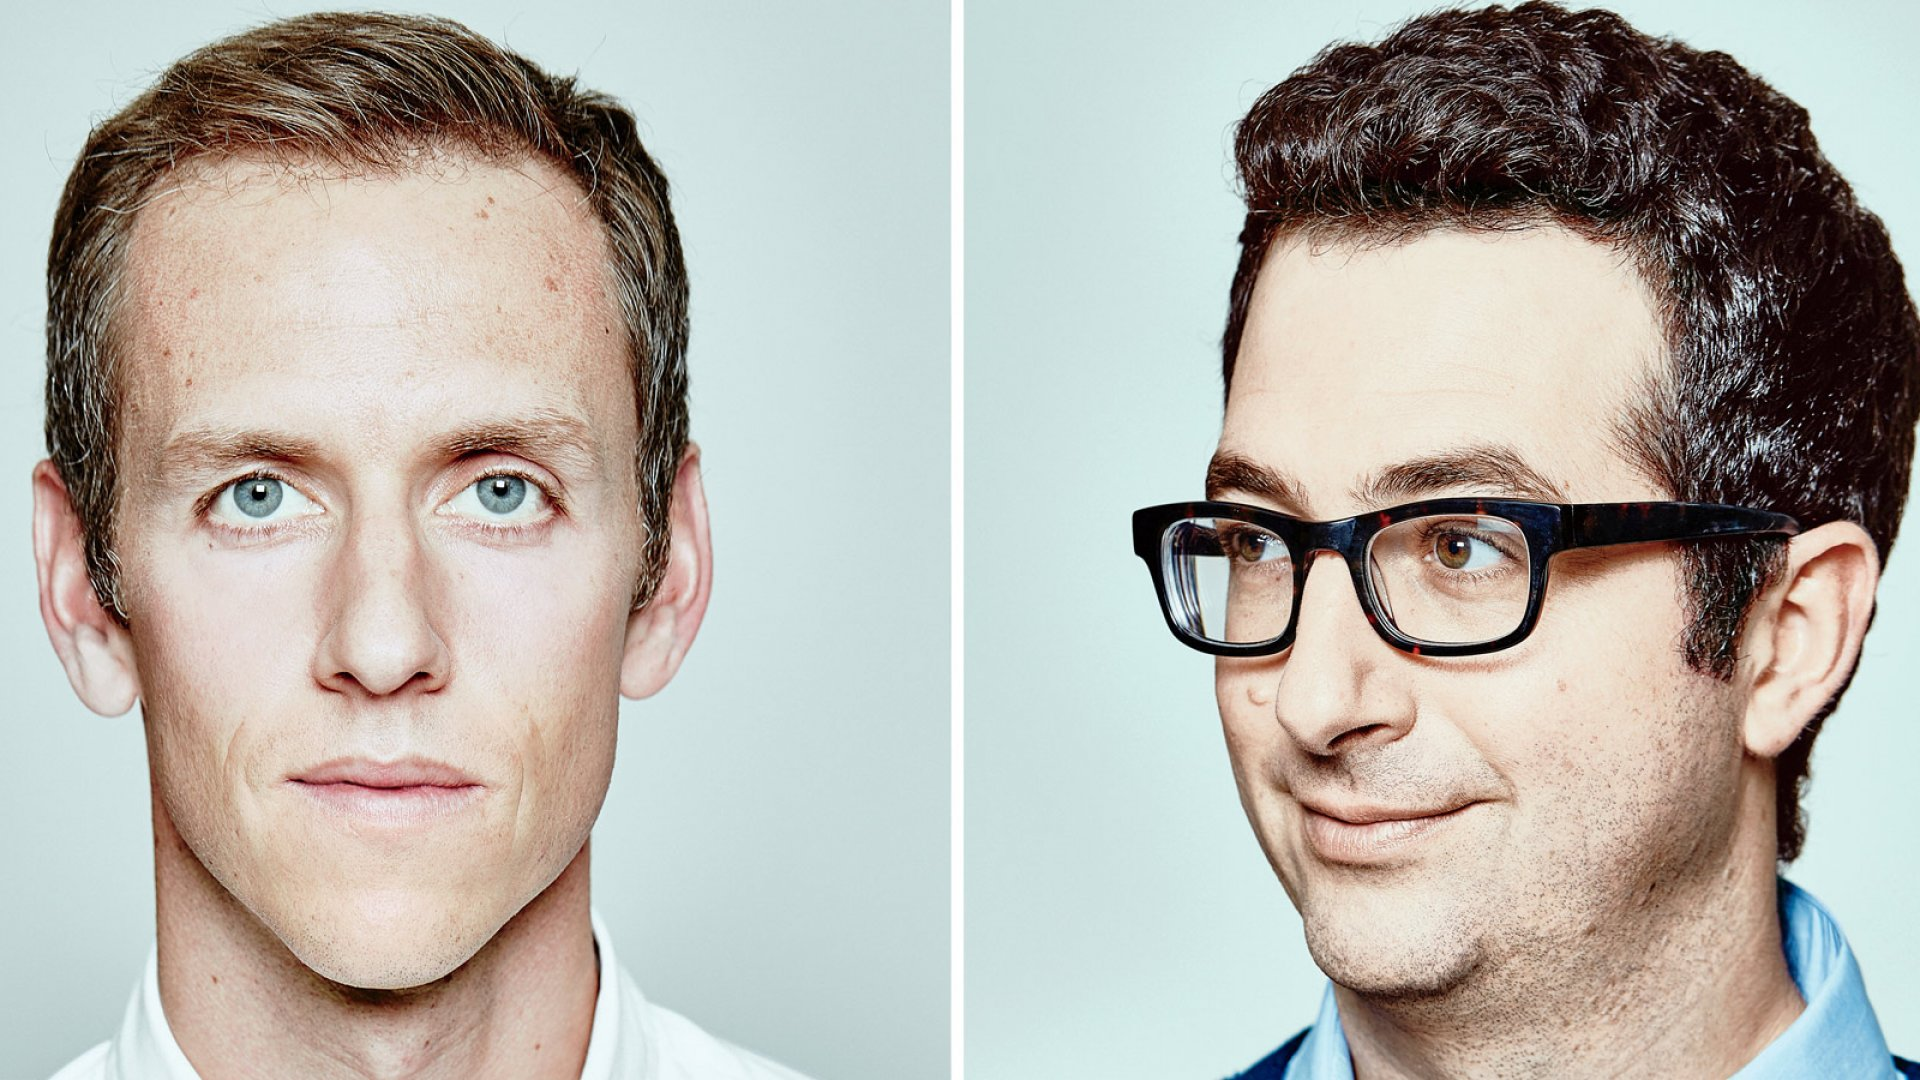 Harry's co-founders Andy Katz-Mayfield (left) and Jeff Raider have raised more than $250 million to try to upend Gillette, Schick, and Dollar Shave Club.